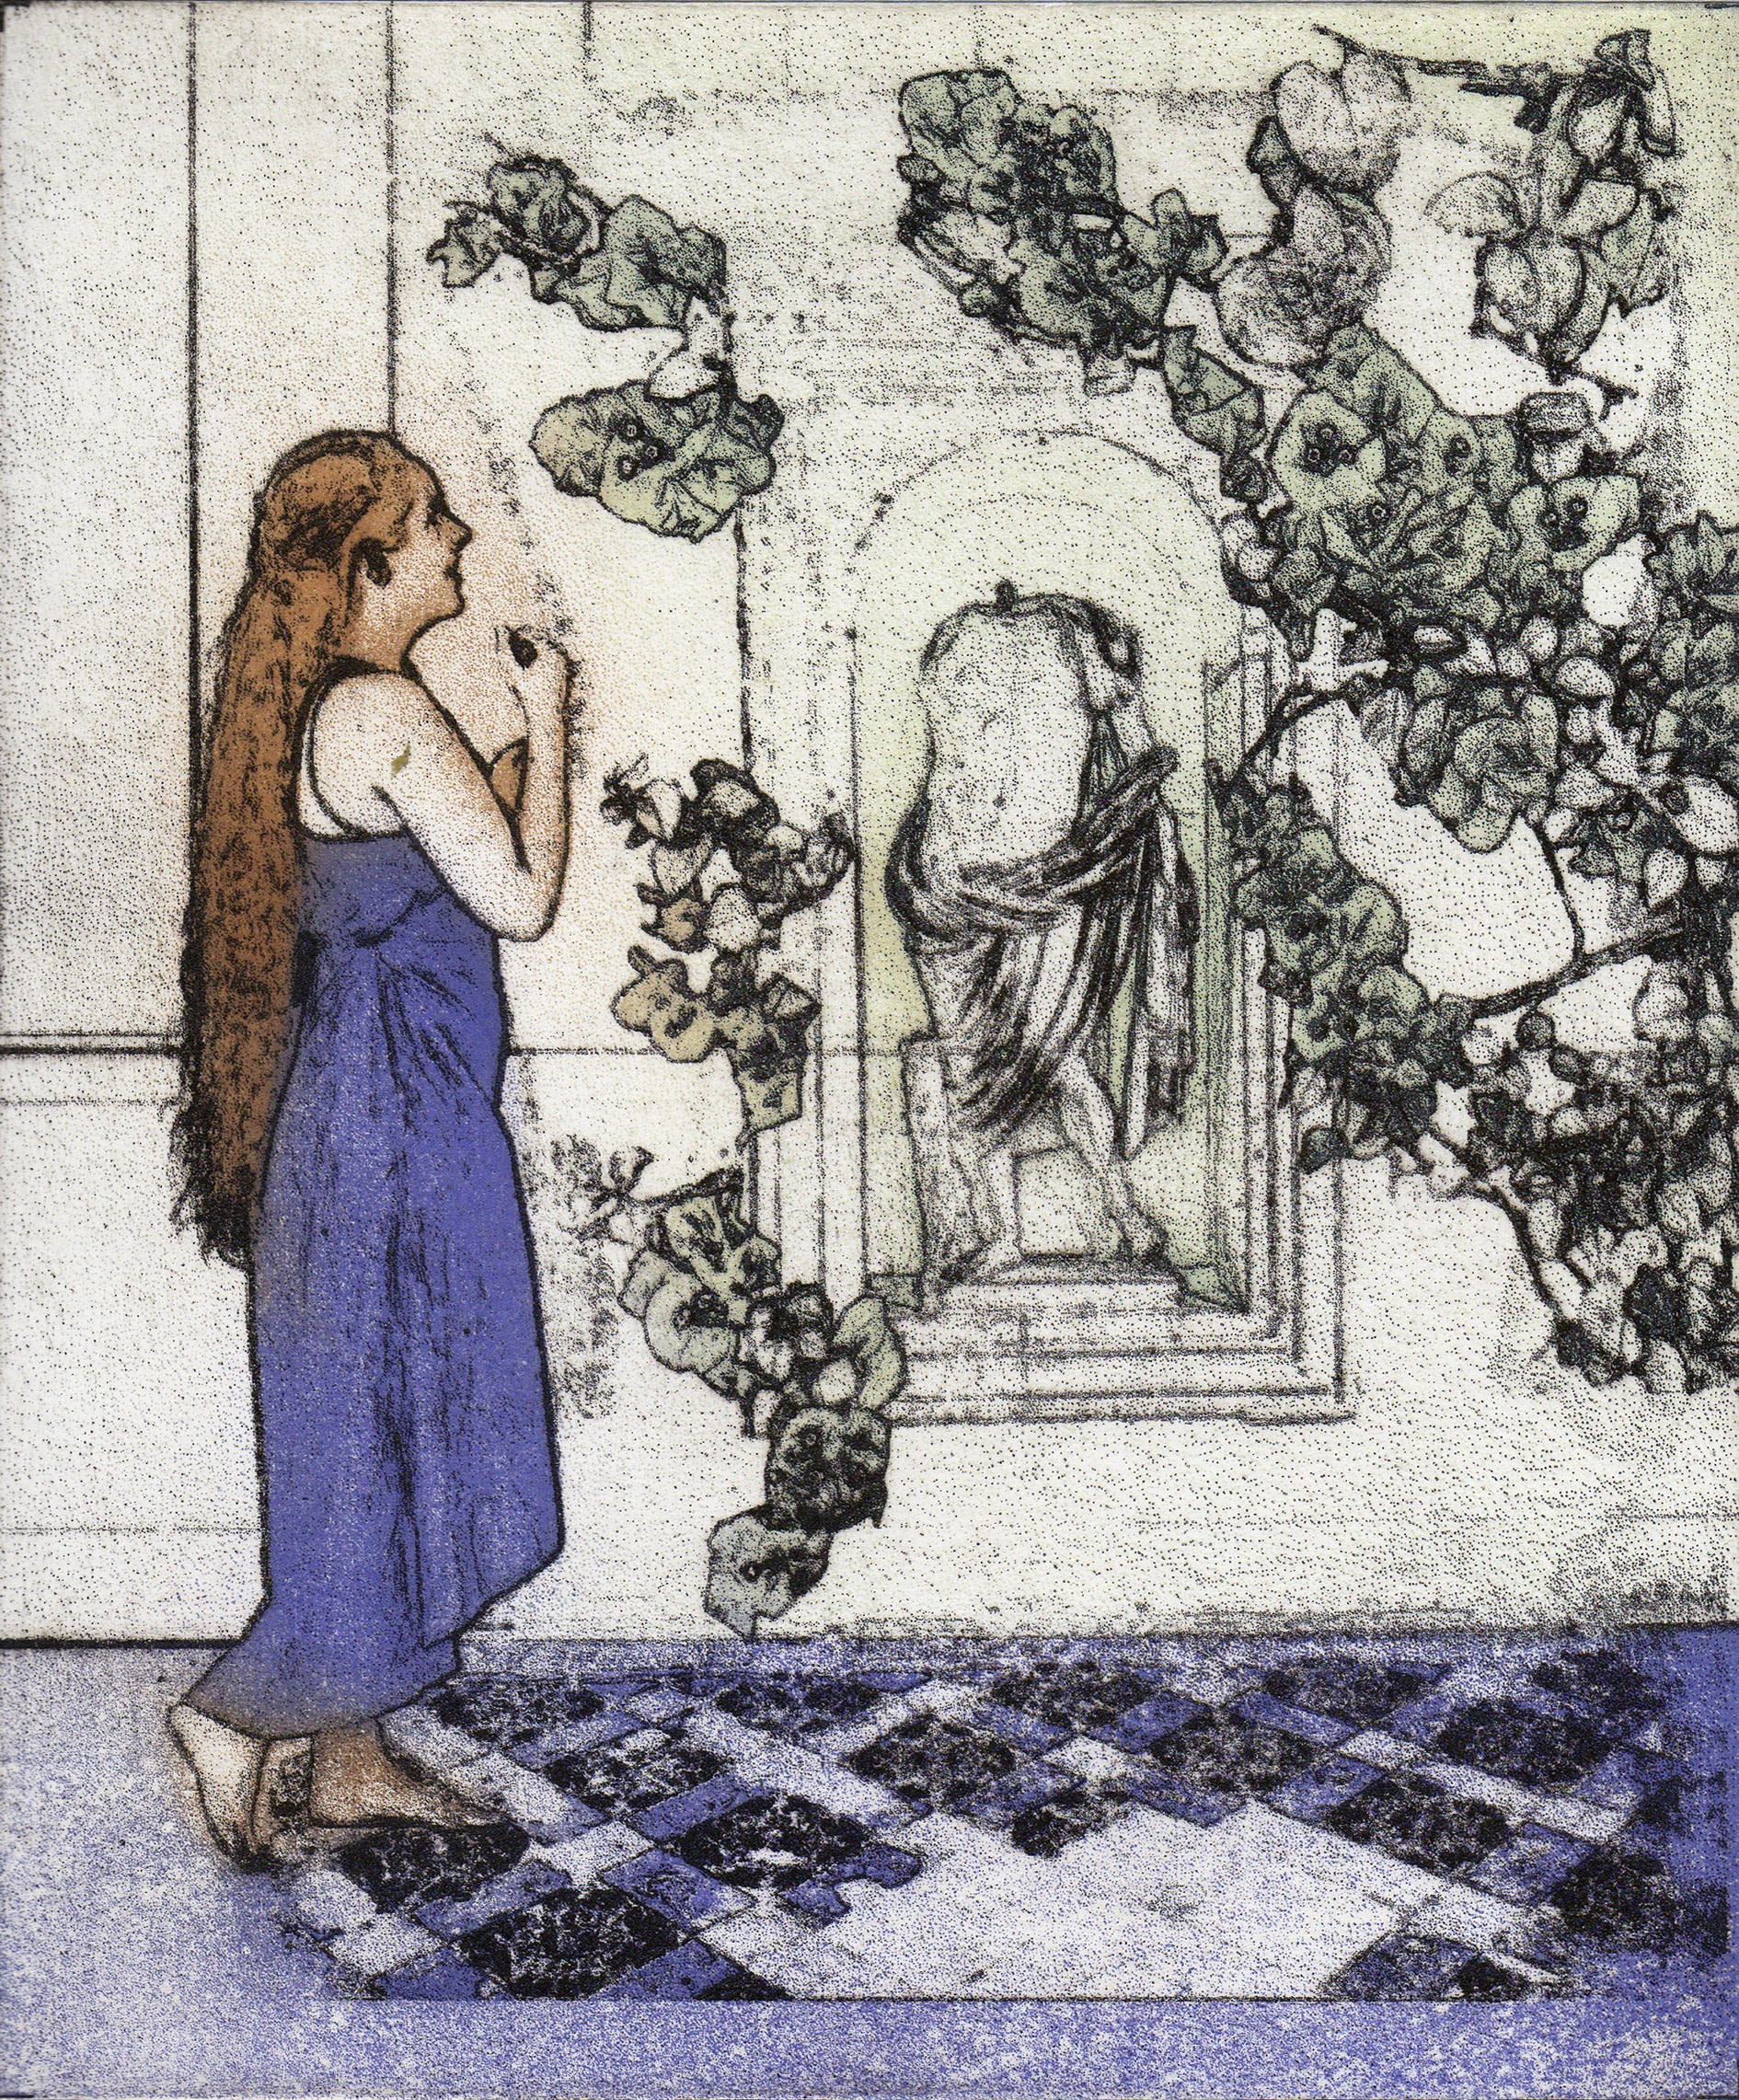 """<span class=""""link fancybox-details-link""""><a href=""""/exhibitions/11/works/image_standalone137/"""">View Detail Page</a></span><p>MARGARET ASHMAN RE</p><p></p><p><em>In the Courtyard</em>, 2017</p><p>photo etching</p><p>Inspired by Sir Frank Brangwyn RA RWS RE</p><p></p><p>Part of the Print REbels Portfolio</p><p></p><p>""""This work pays tribute to <b>Sir Frank Brangwyn RA ARWS RE PRBA (1867-1956)</b>, to whom I am related - we are seventh cousins, and his position as a leading light of the Arts and Crafts Movement.""""</p>"""